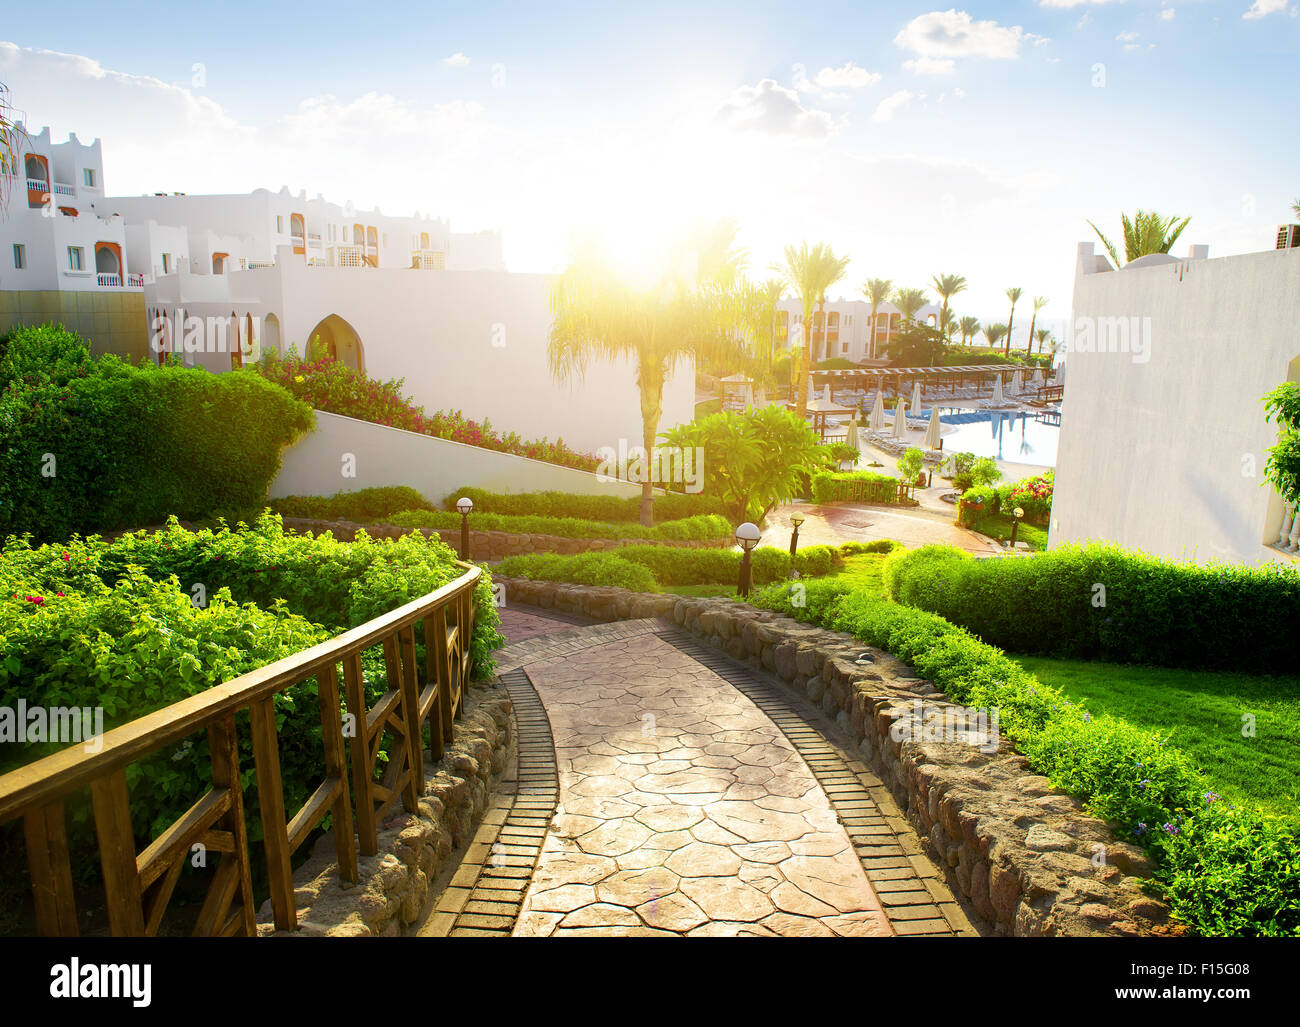 Beauty of egyptian hotel in the morning - Stock Image